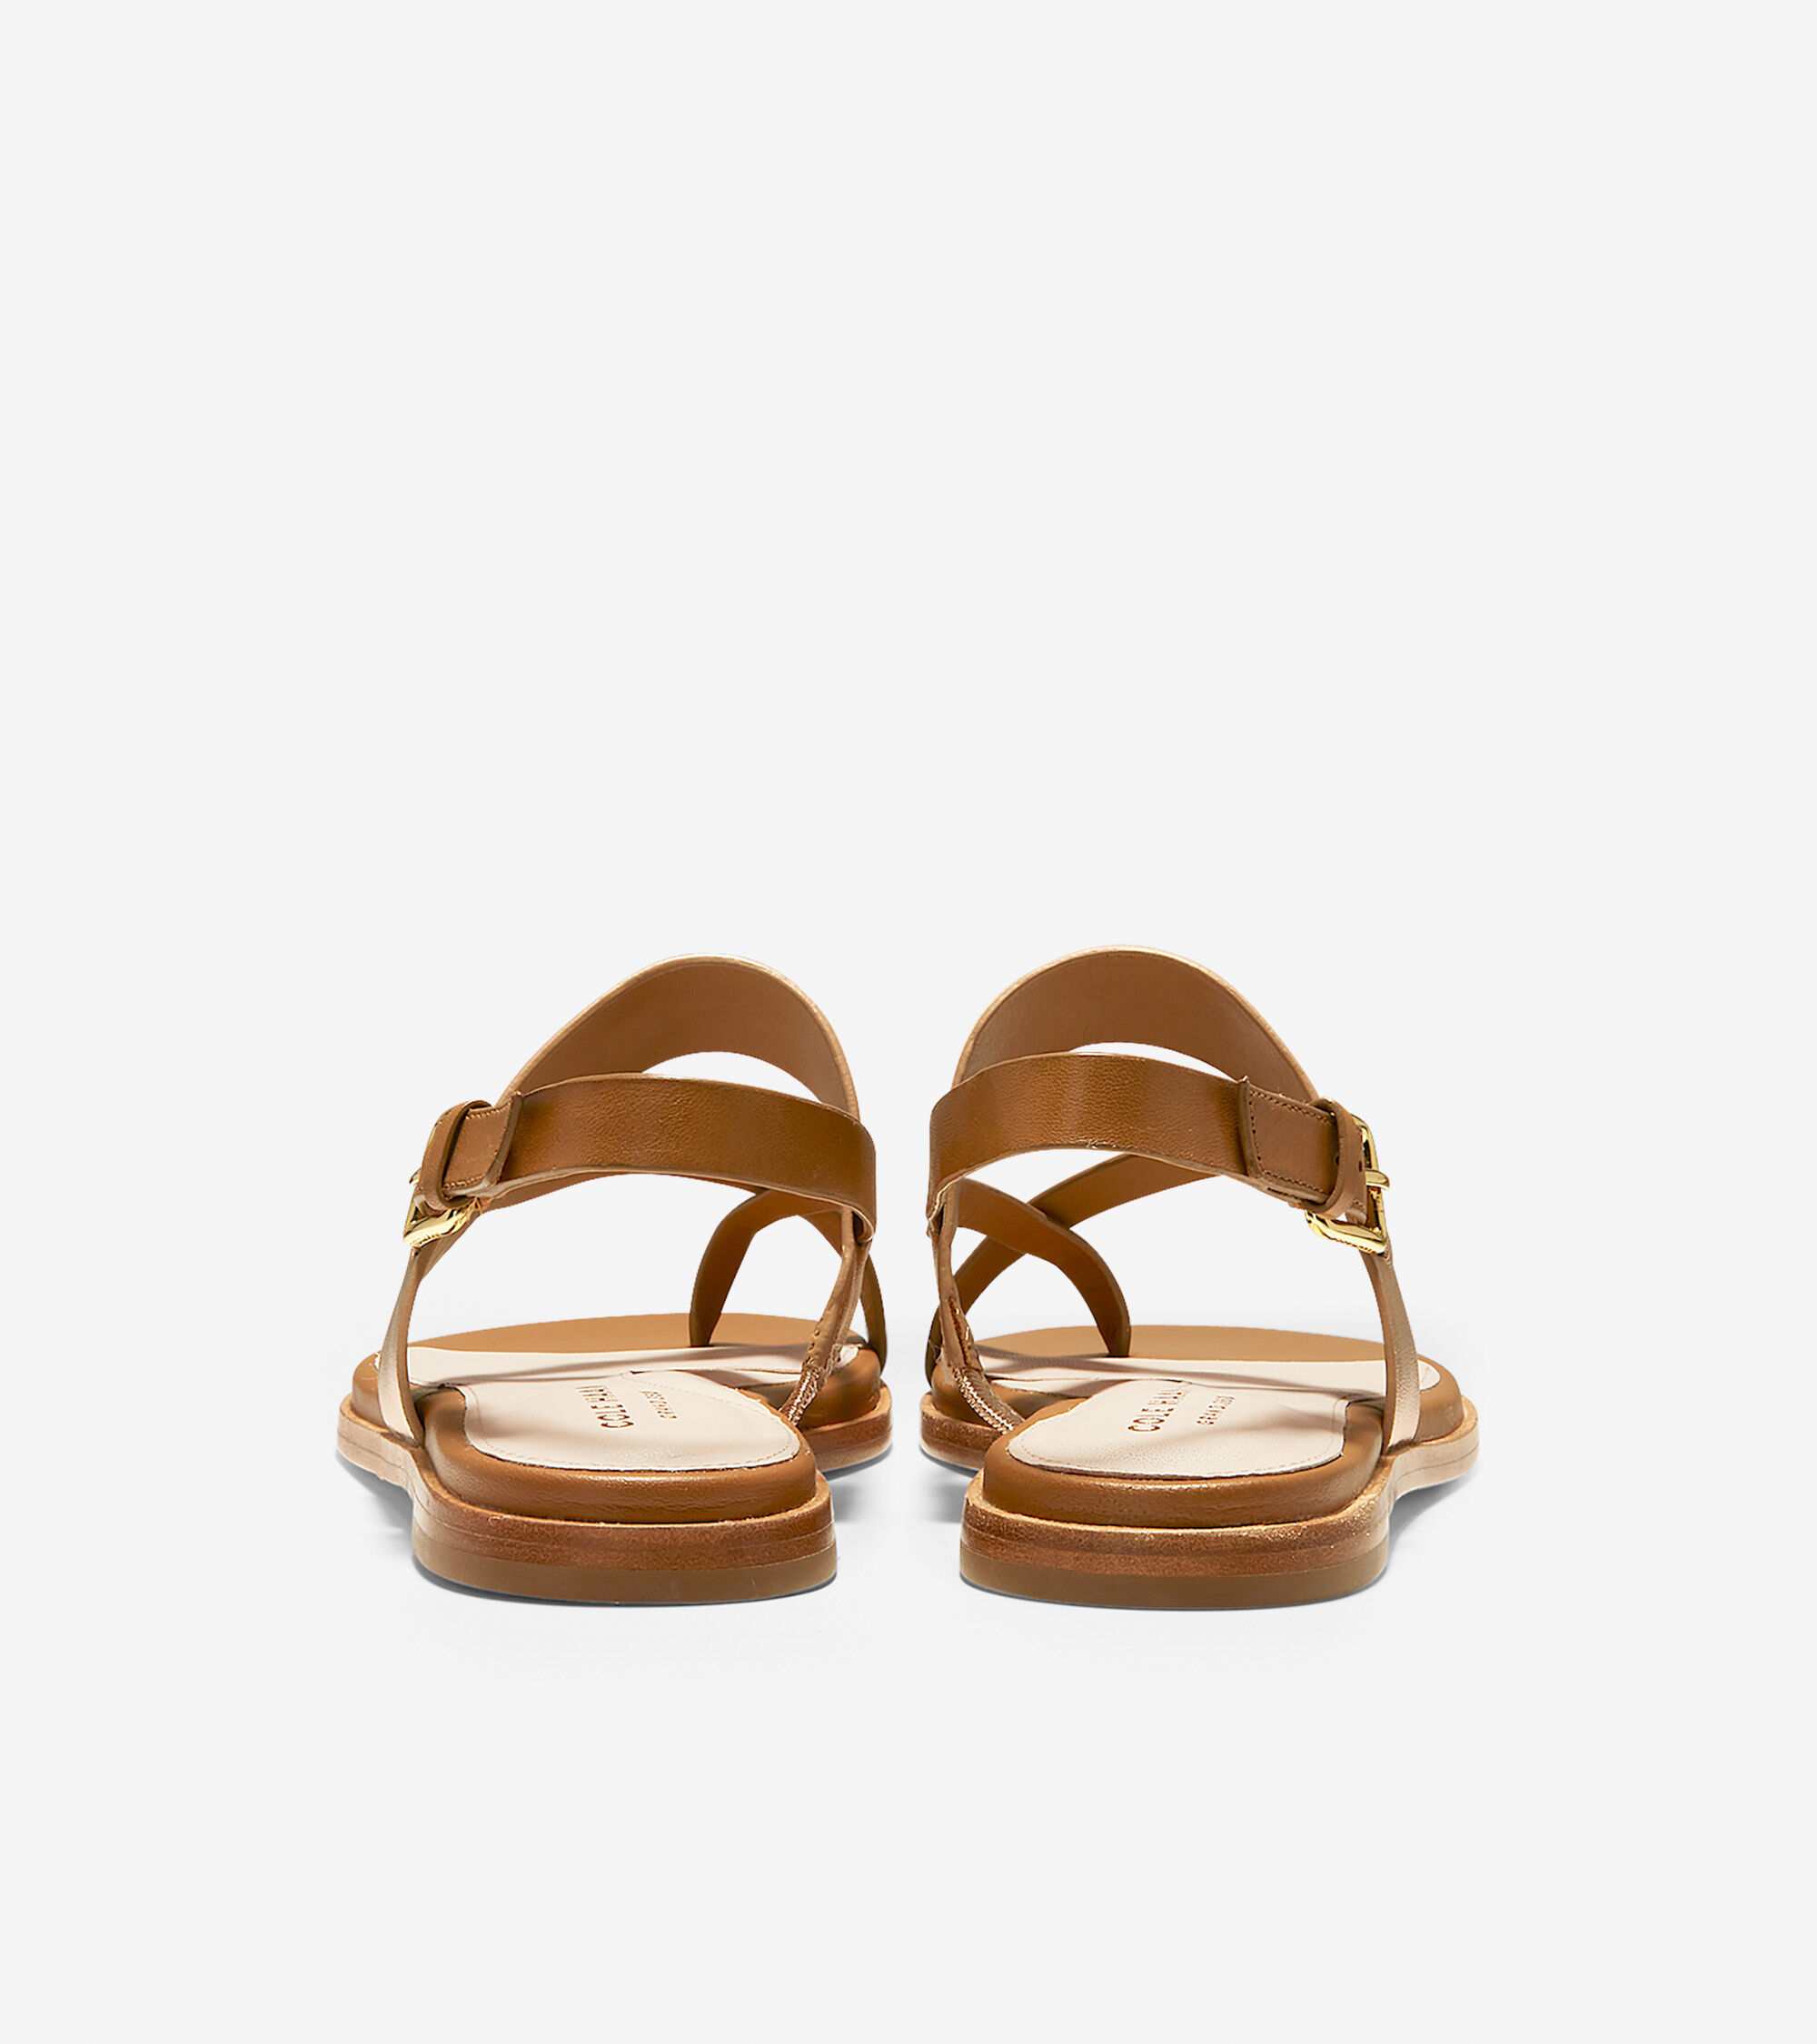 33bce3d925cf9 Women s Anica Thong Sandals in Pecan Rose